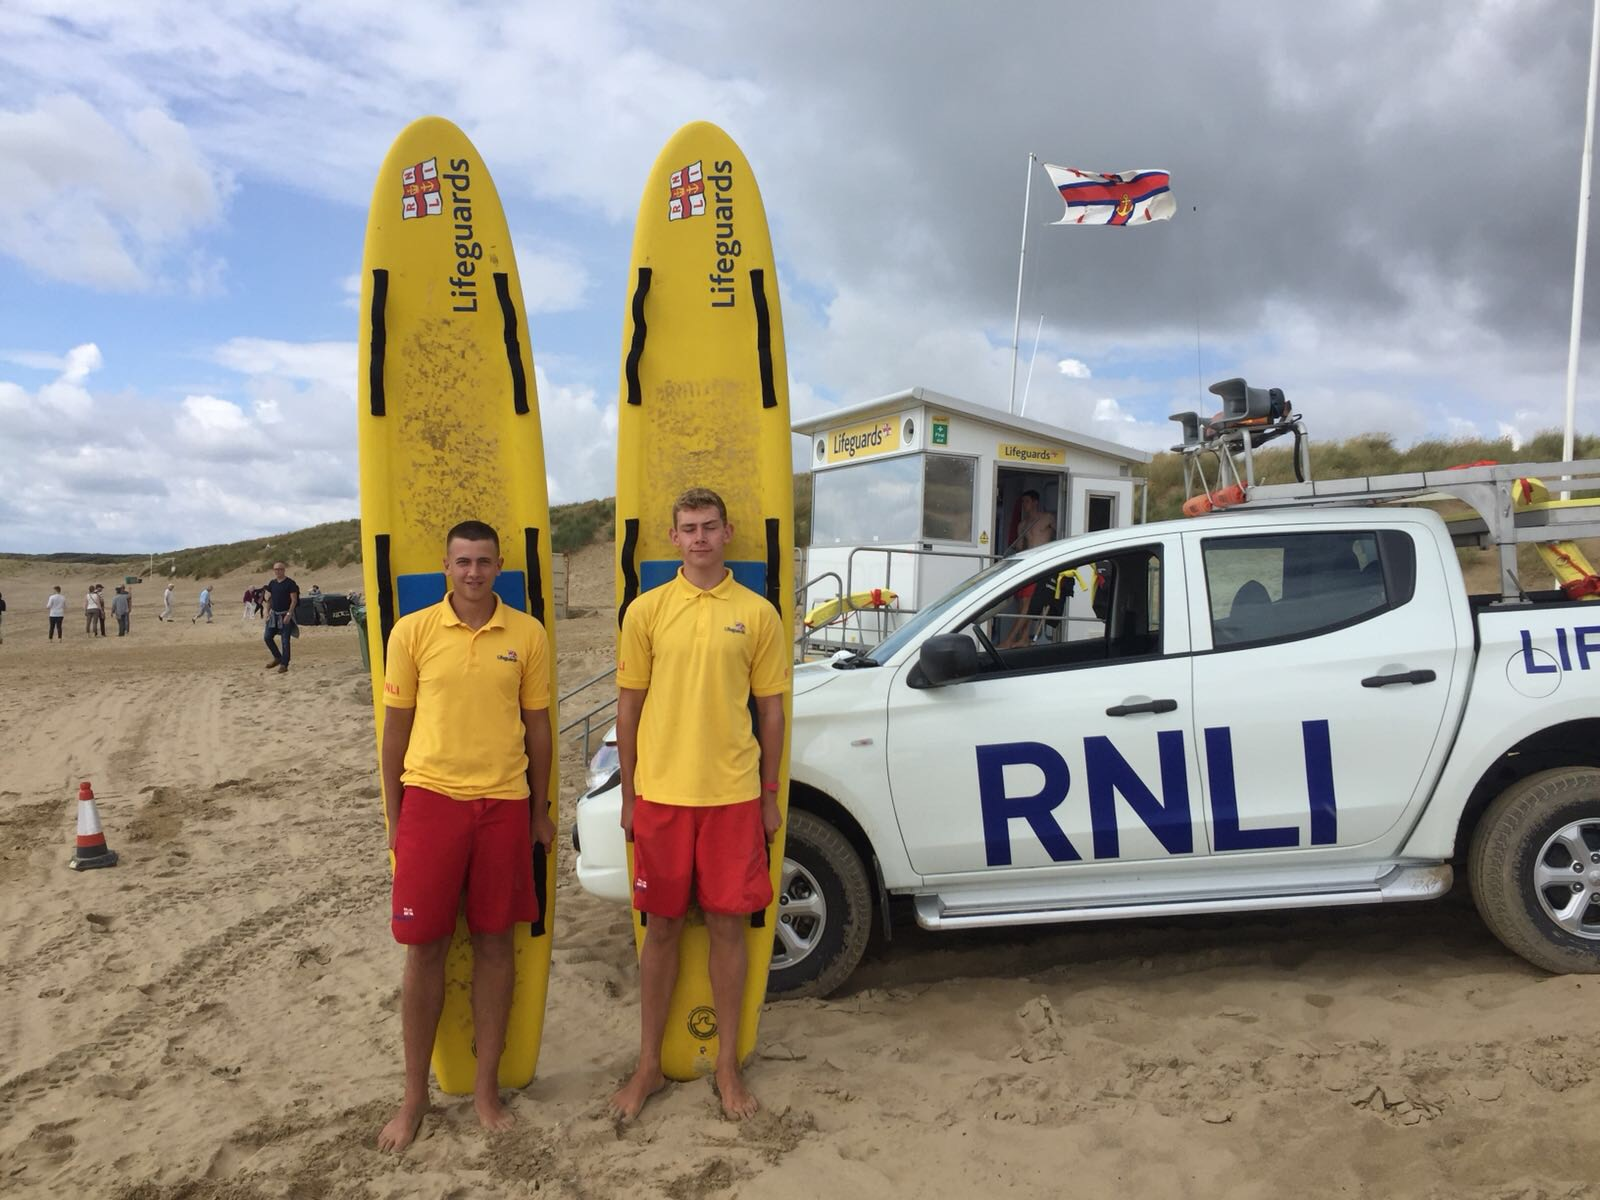 RNLI lifeguards Tom Bedford (left) and James Blything (right) on Camber Sands